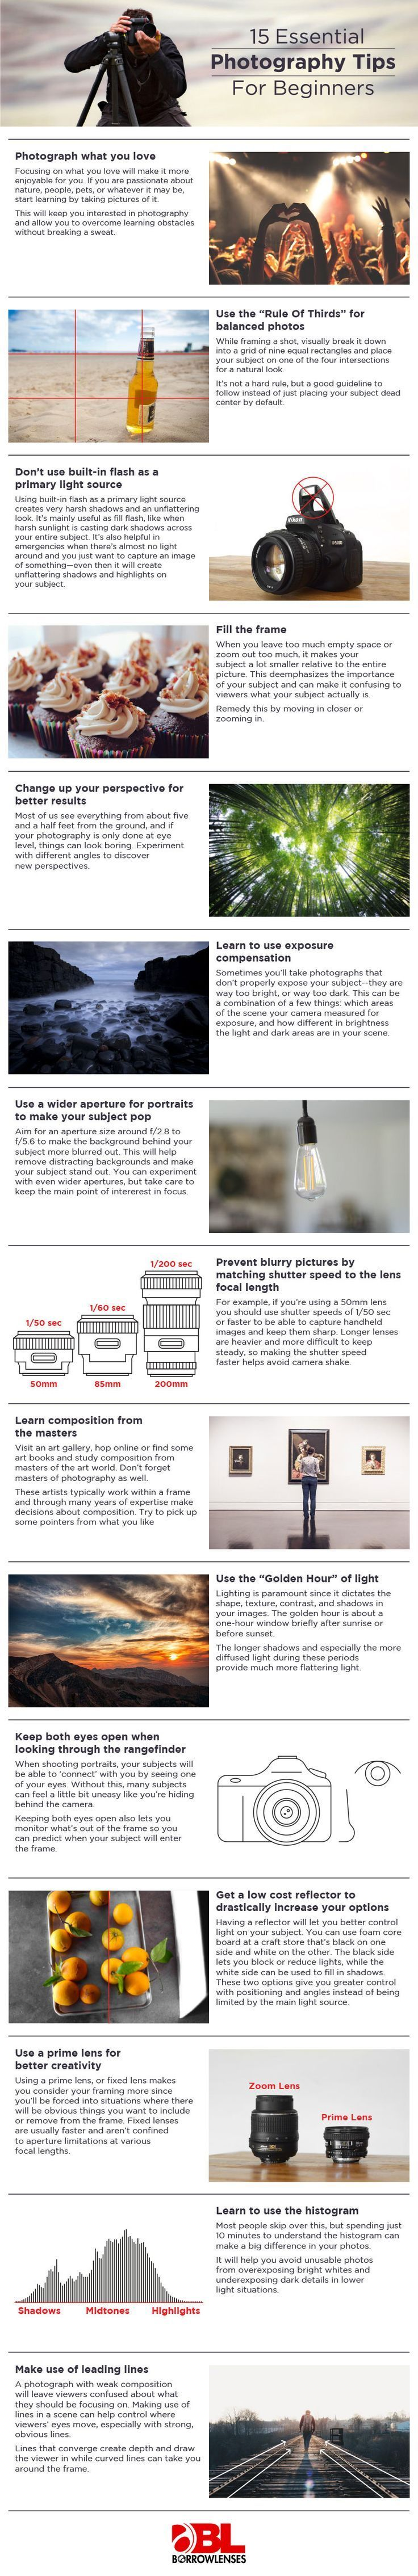 15 ESSENTIAL PHOTOGRAPHY TIPS #photography #phototips http://www.picturecorrect.com/tips/15-essential-photography-tips/